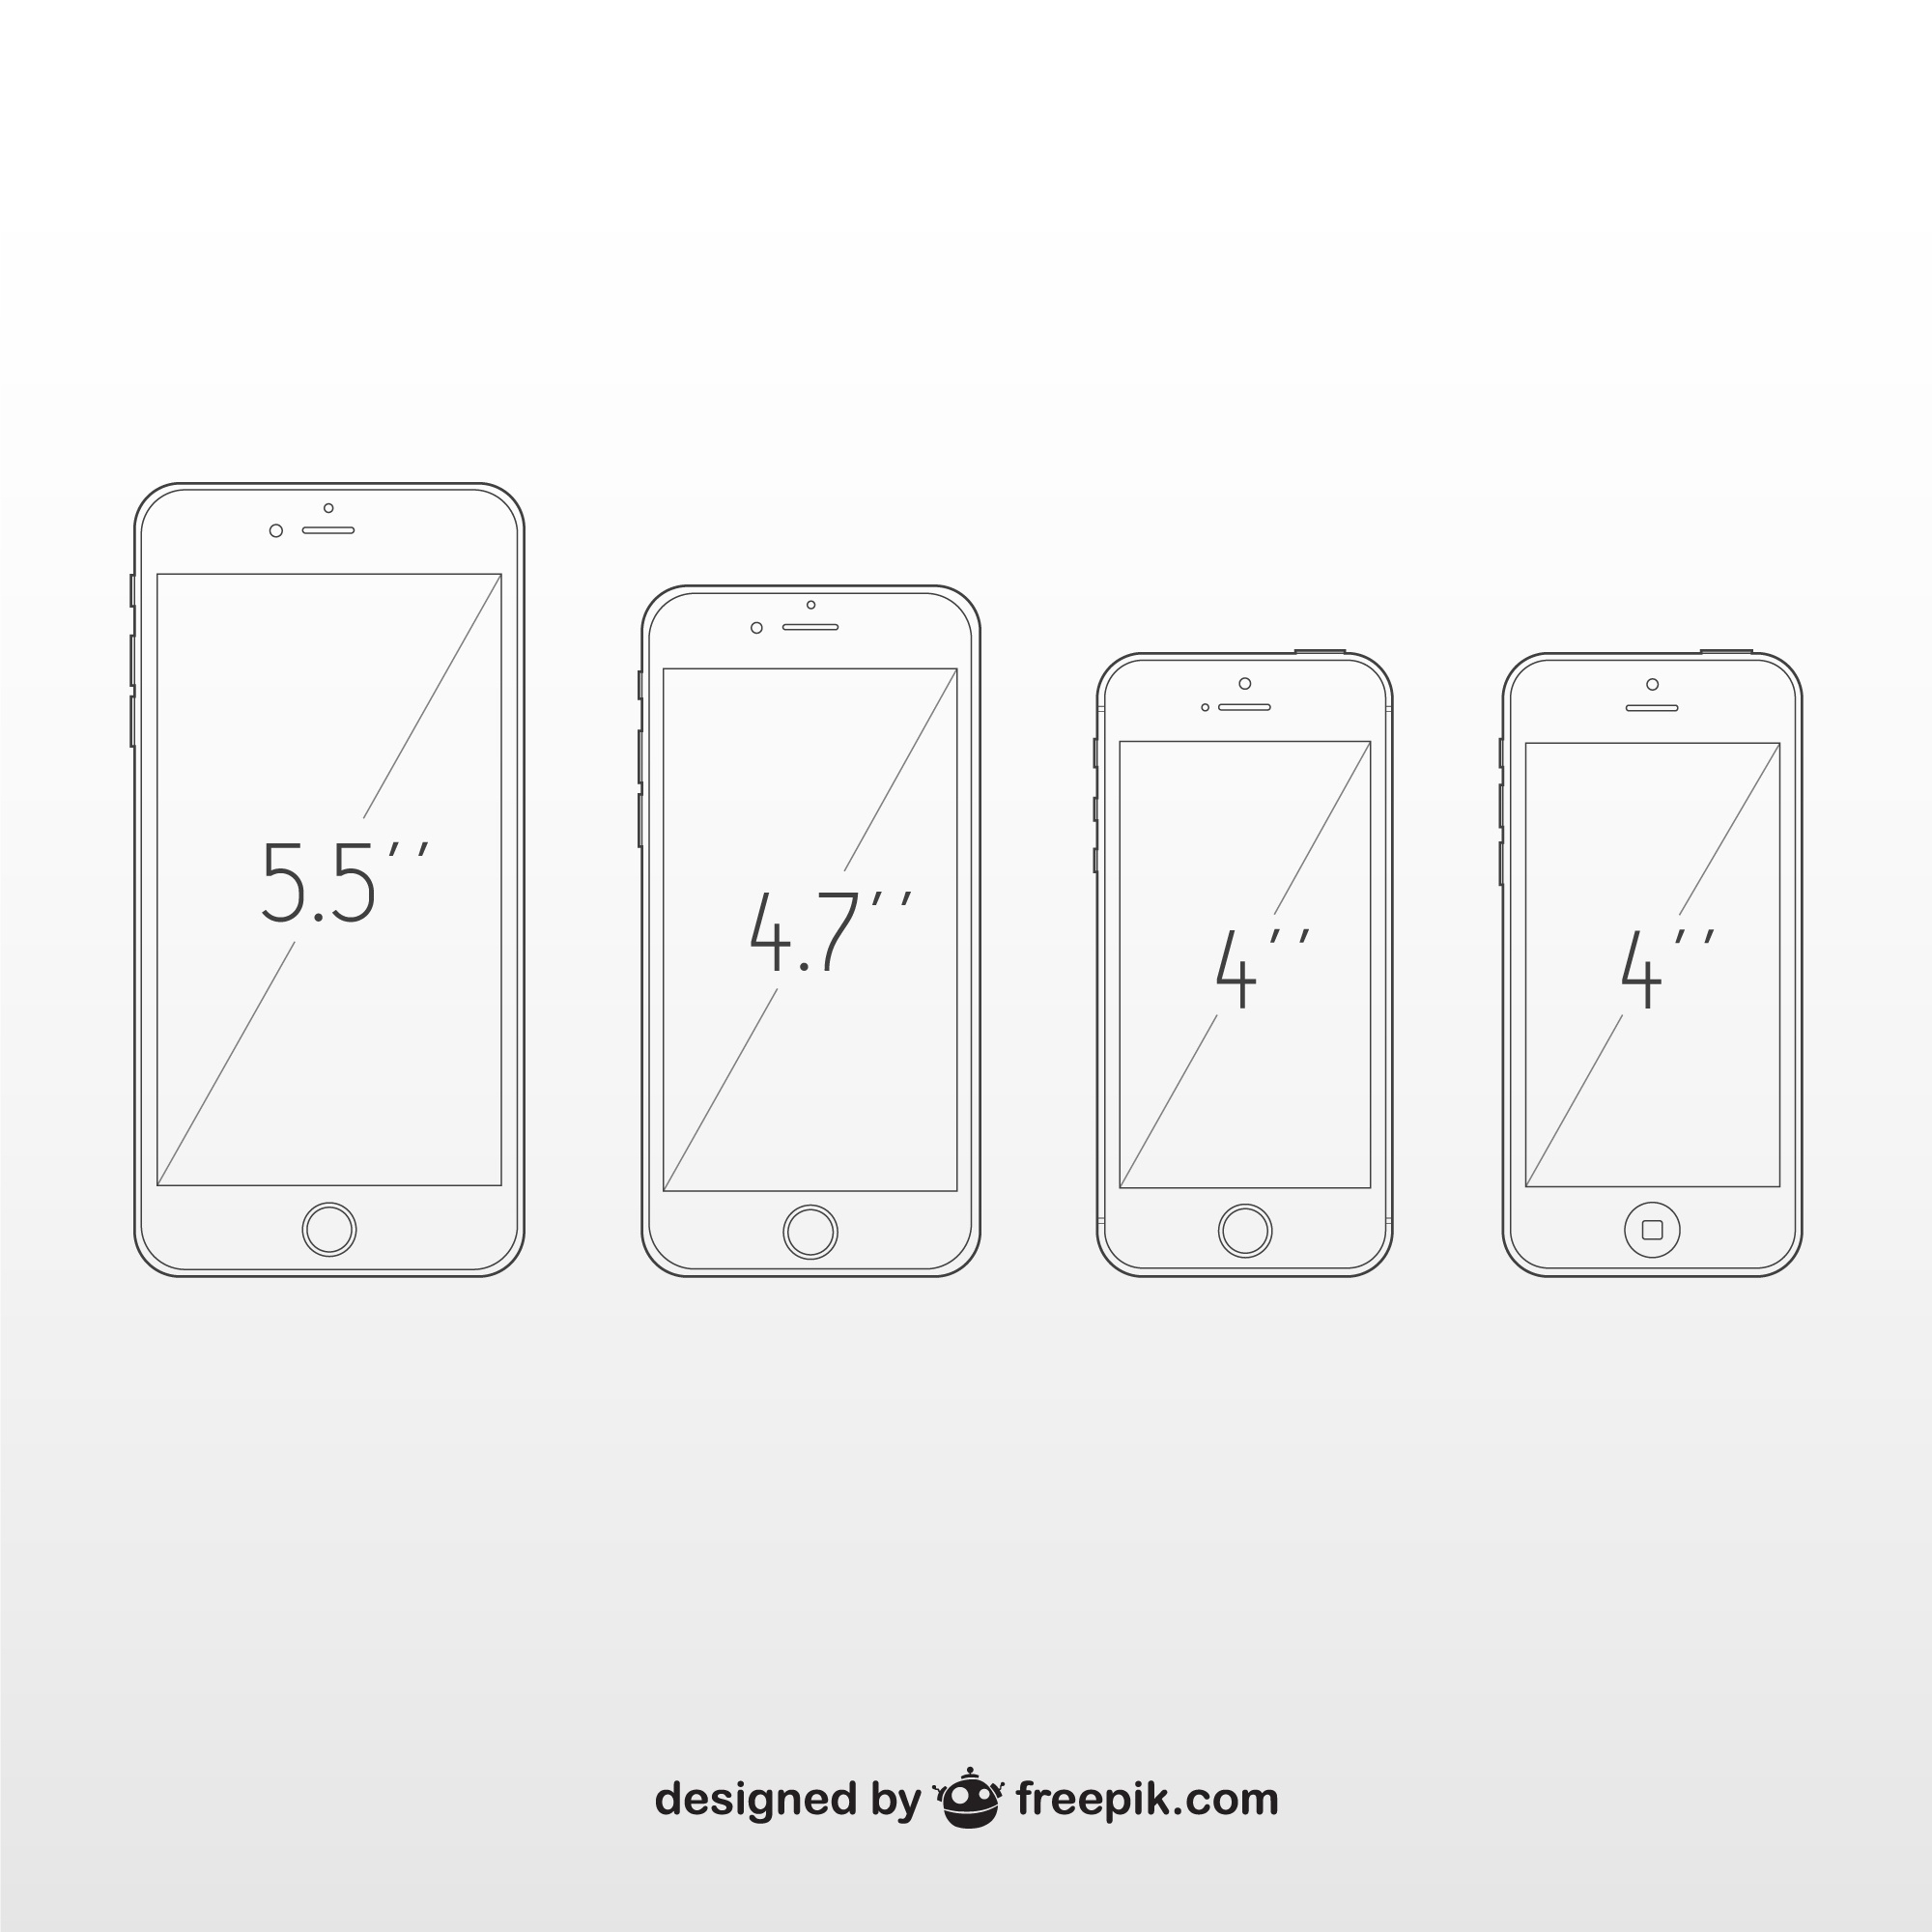 IPhones sizes comparation